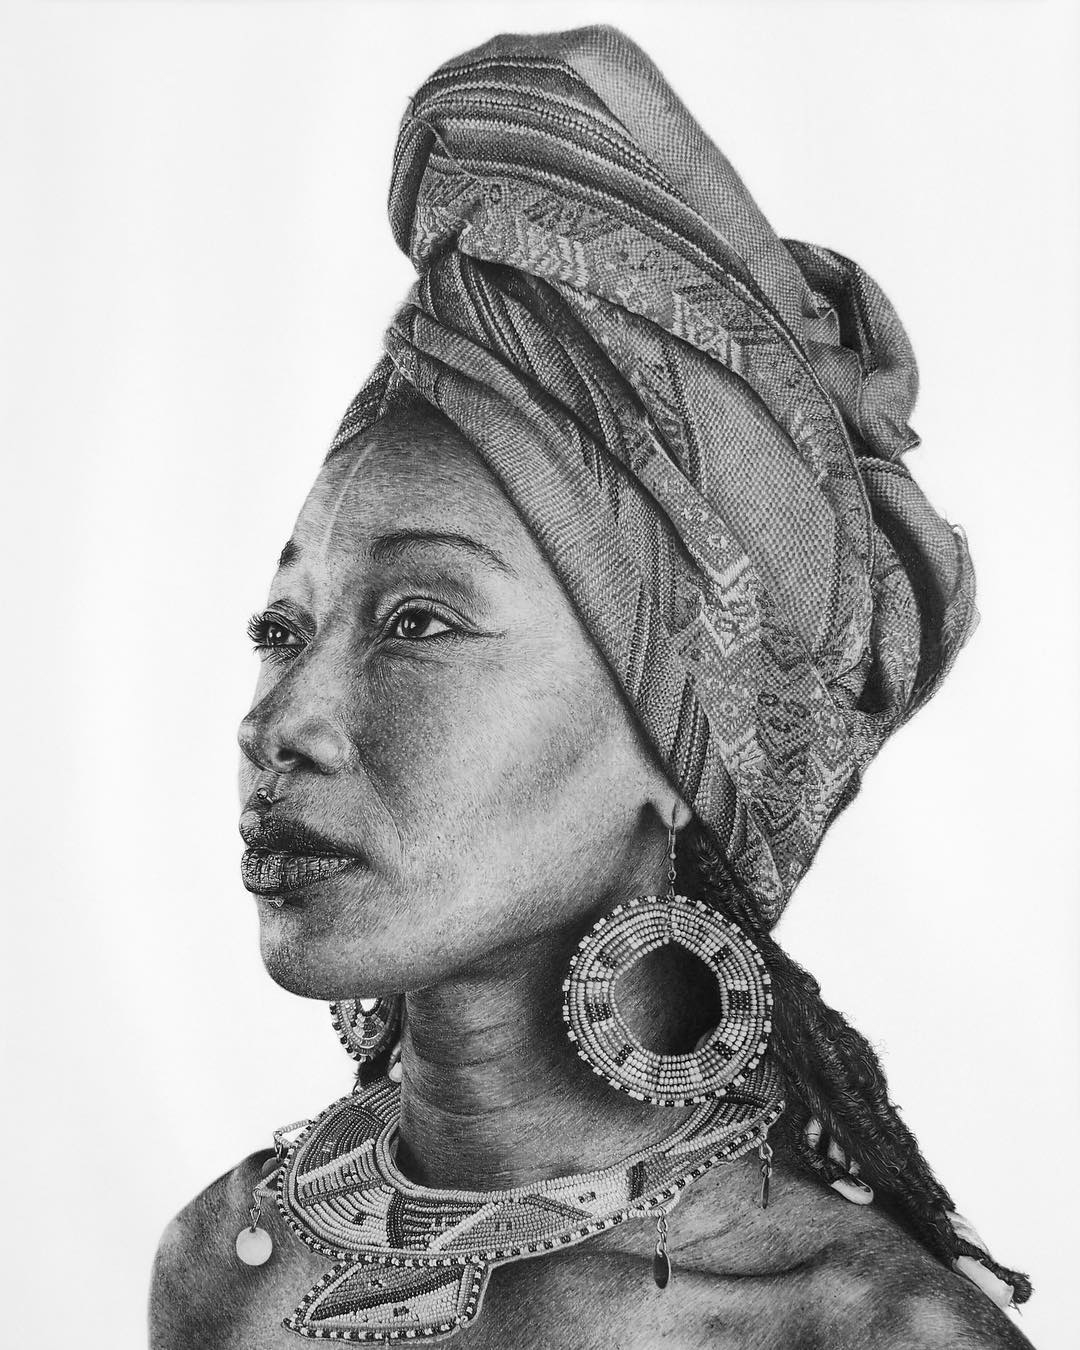 01-Fatoumata-Diawara-Monica-Lee-zephyrxavier-Eclectic-Mixture-of-Pencil-Wild-Life-and-Portrait-Drawings-www-designstack-co